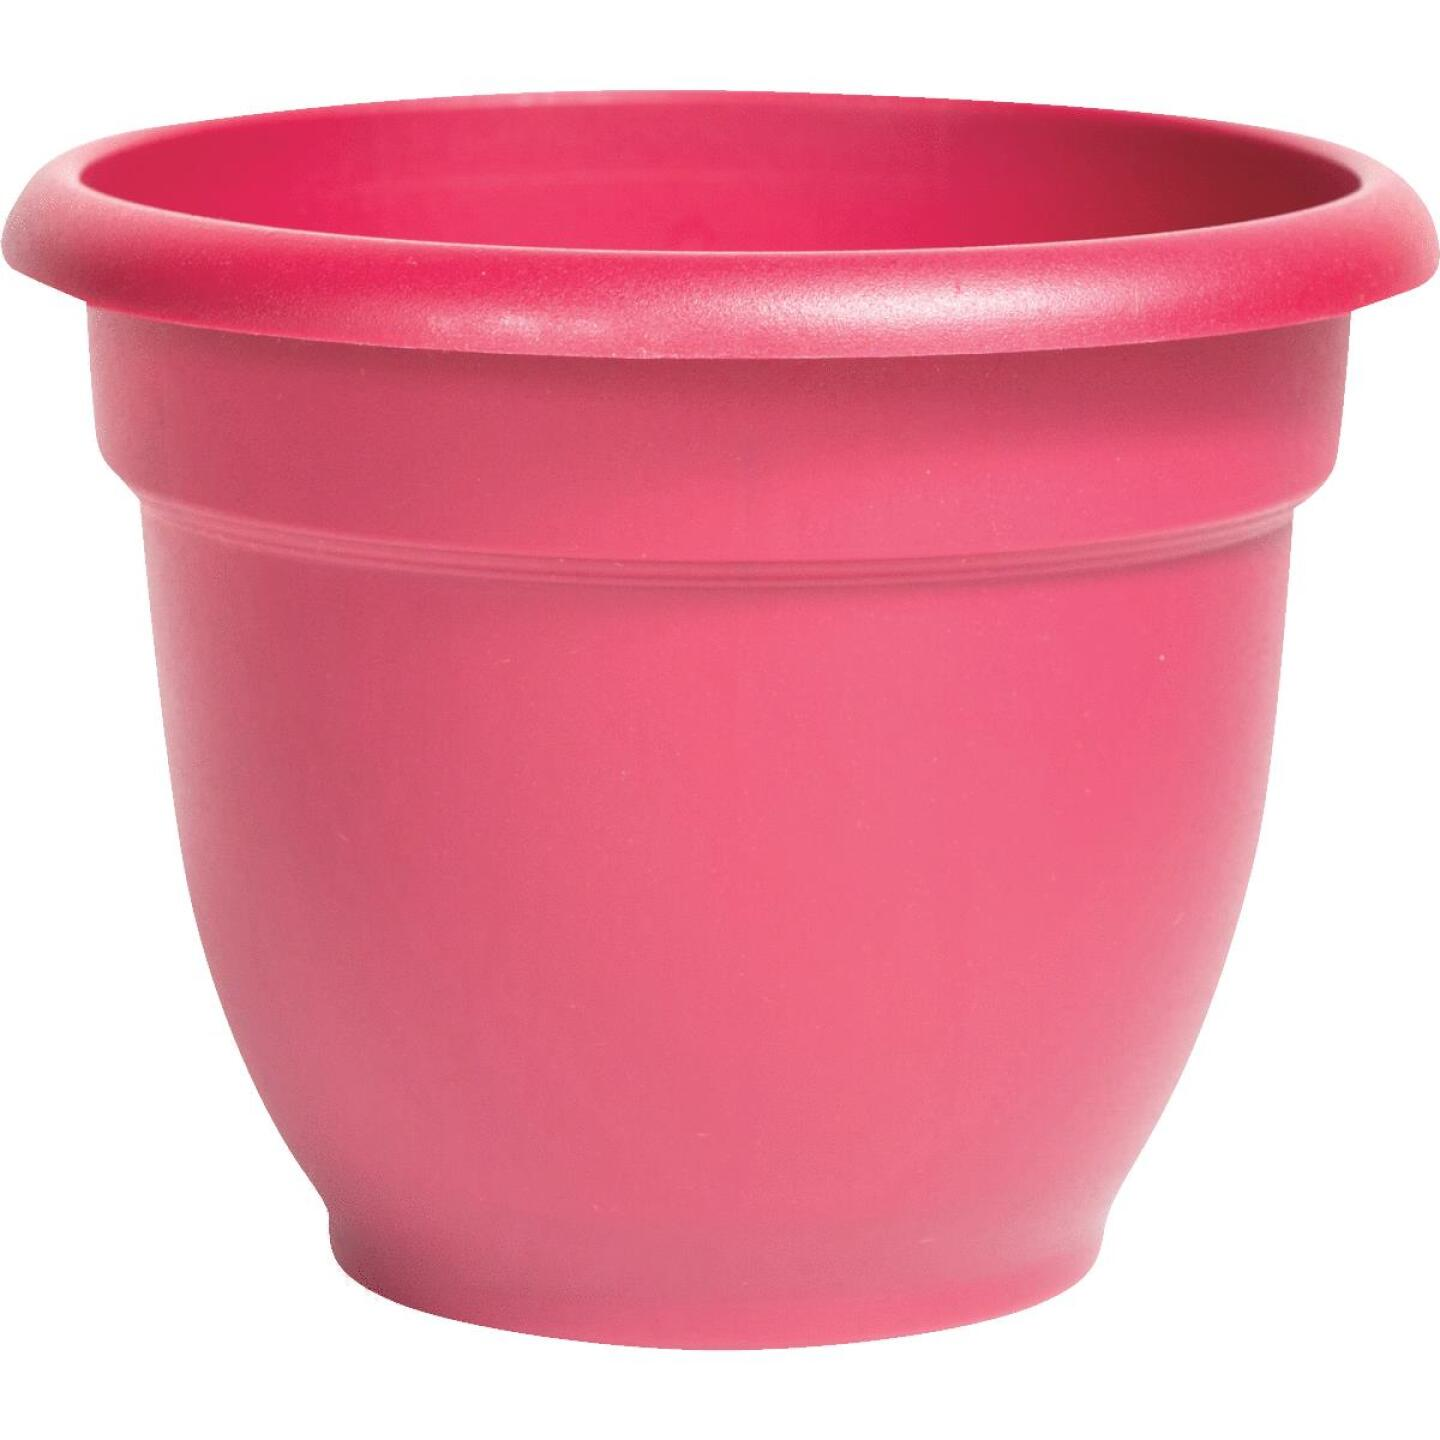 Bloem Ariana 13.75 In. H. x 16 In. Dia. Plastic Self Watering Burnt Red Planter Image 1